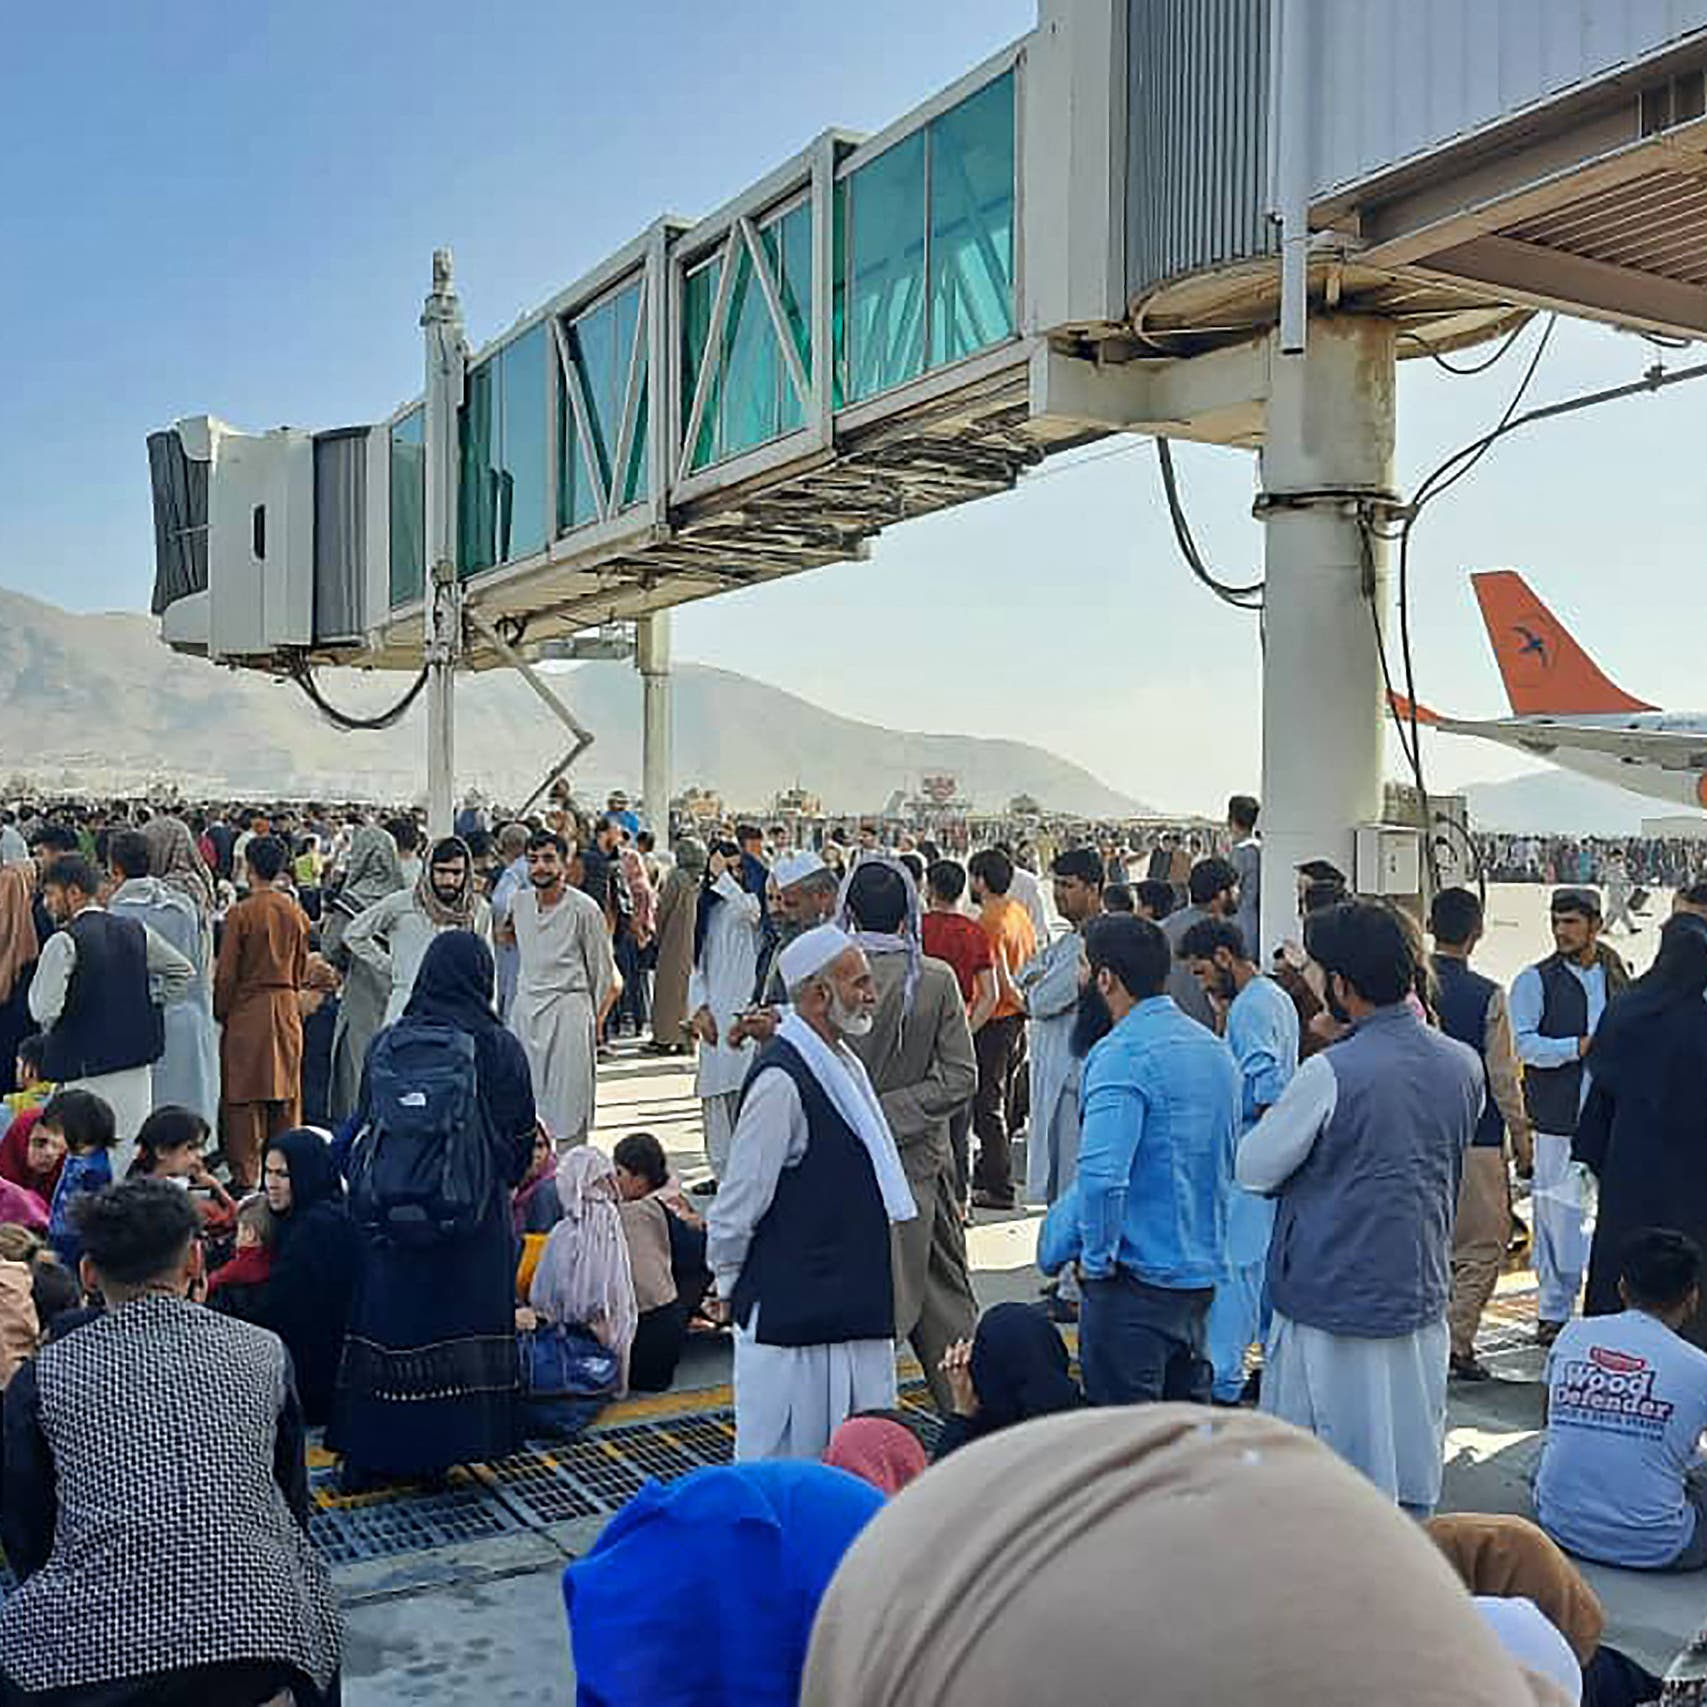 At least seven killed at Kabul airport as Afghans try to flee Taliban takeover